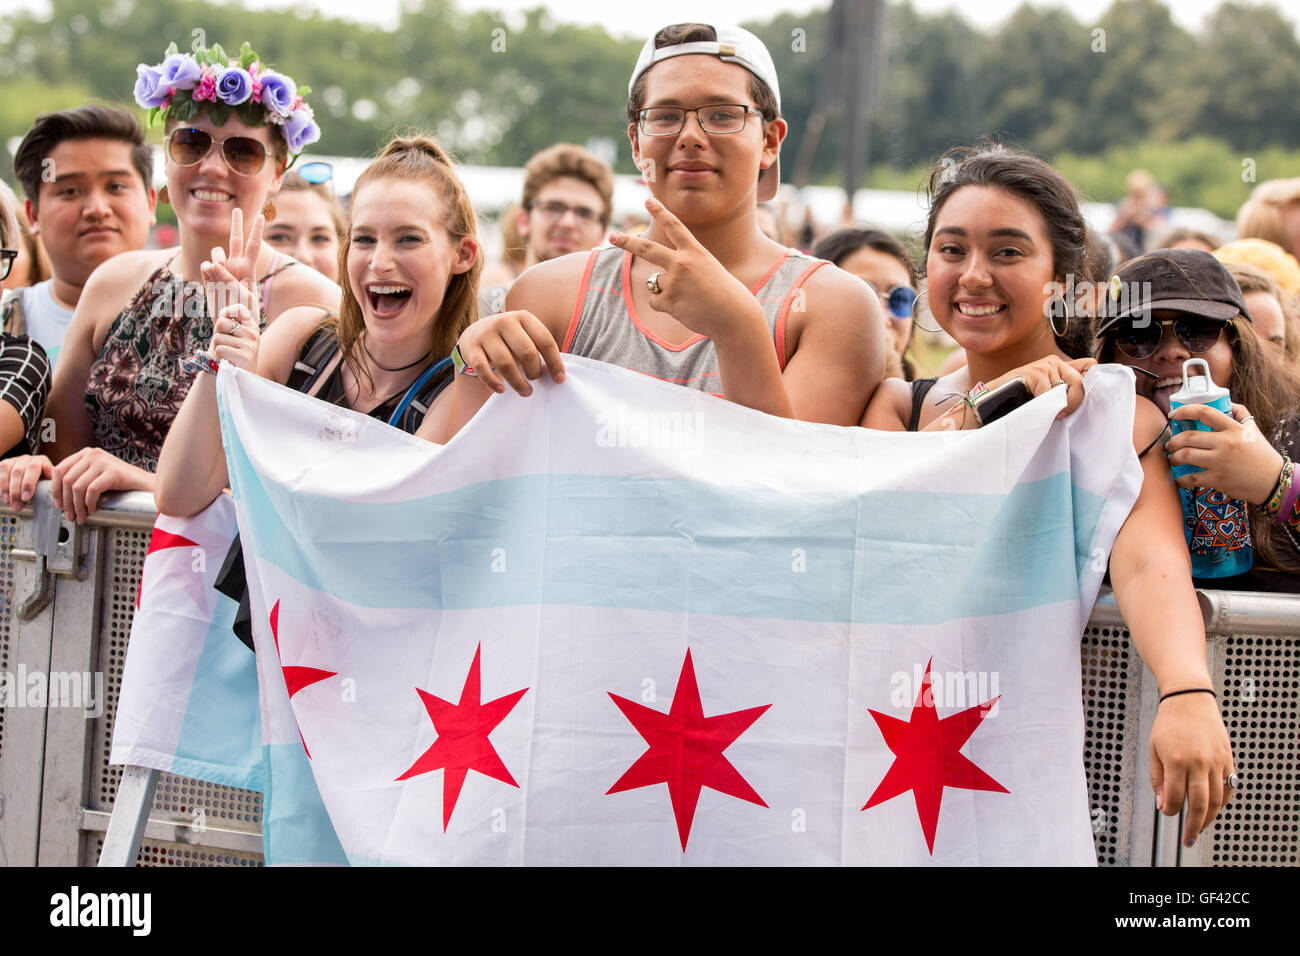 Chicago, Illinois, USA. 28th July, 2016. Fans enjoy the music during Lollapalooza Music Festival at Grant Park in - Stock Image